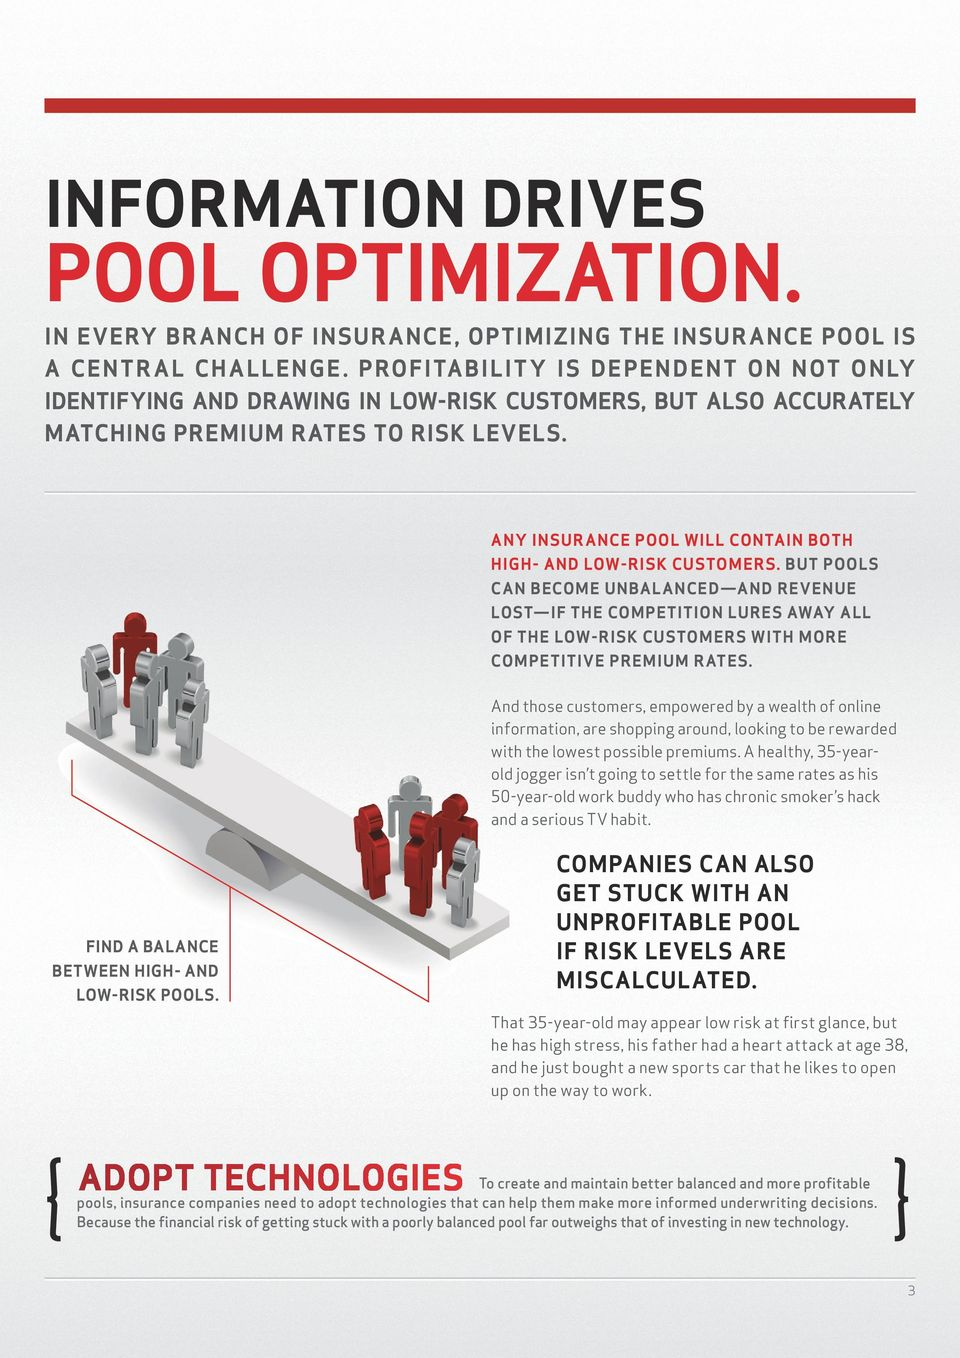 ANY INSURANCE POOL WILL CONTAIN BOTH HIGH- AND LOW-RISK CUSTOMERS.